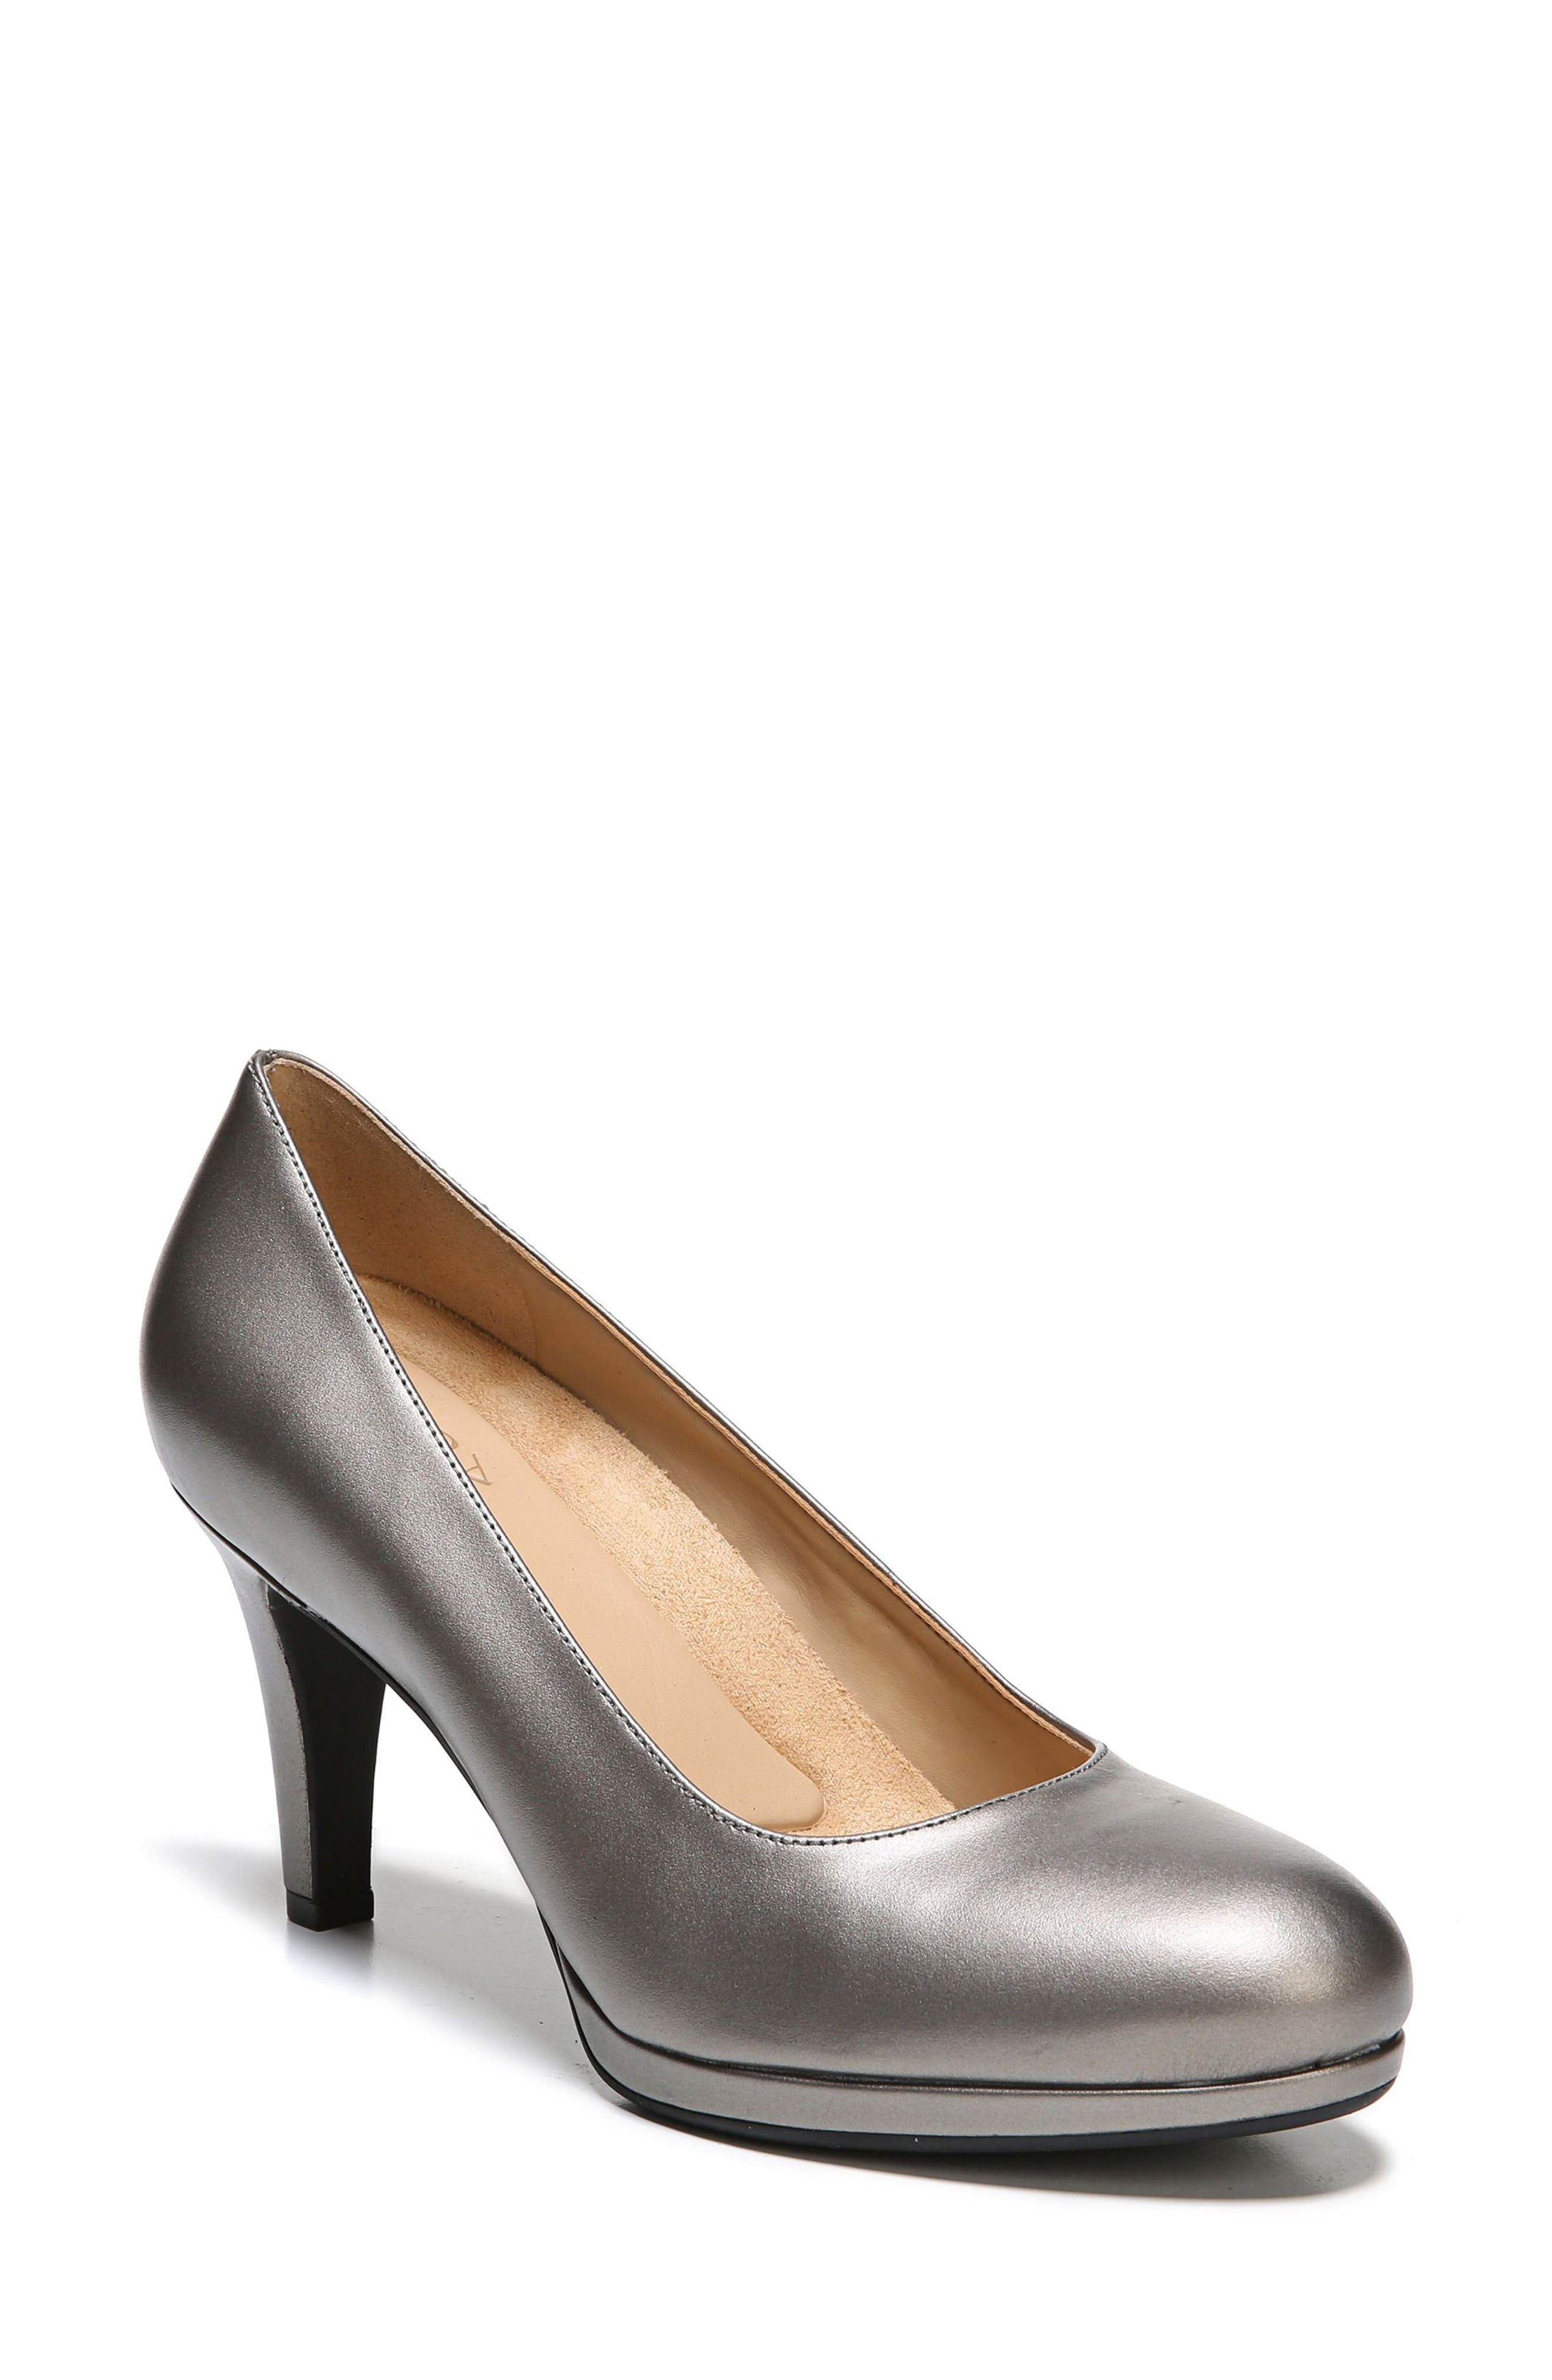 Main Image - Naturalizer 'Michelle' Almond Toe Pump (Women)